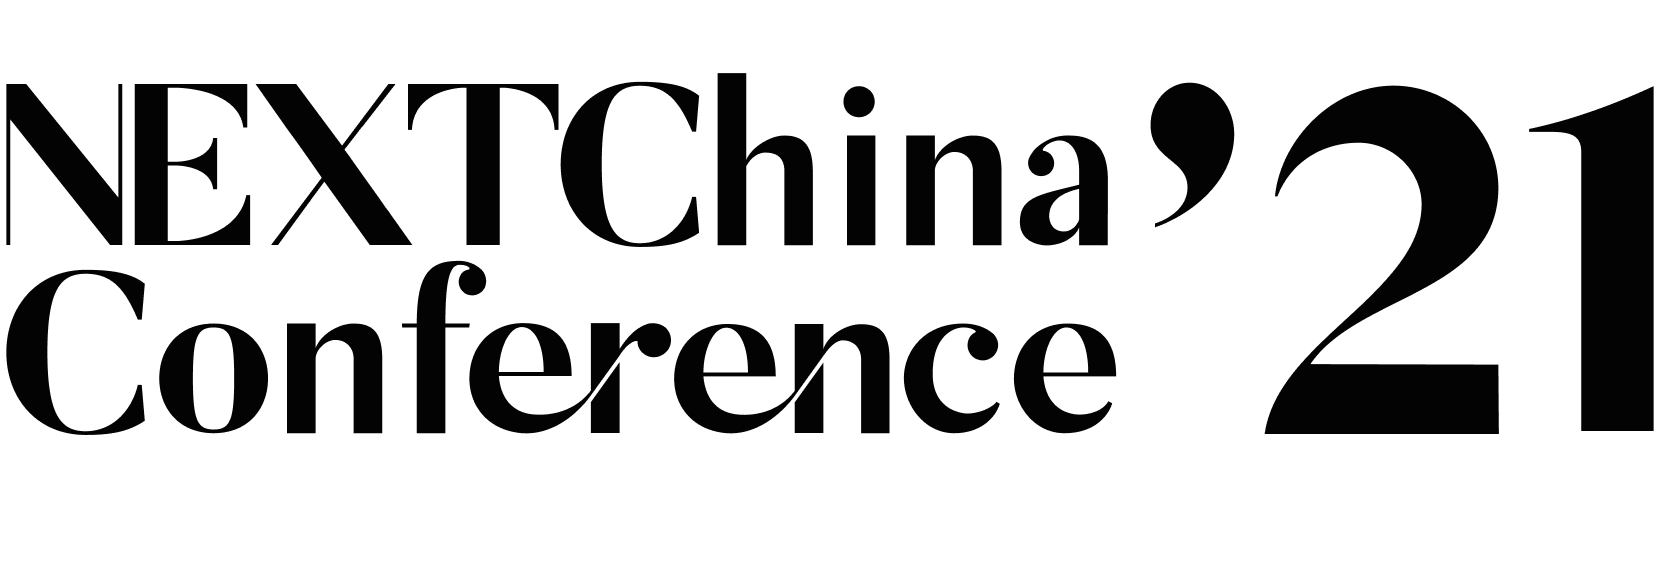 The 2021 NEXTChina Conference logo. Powered by SupChina, an independent media company.